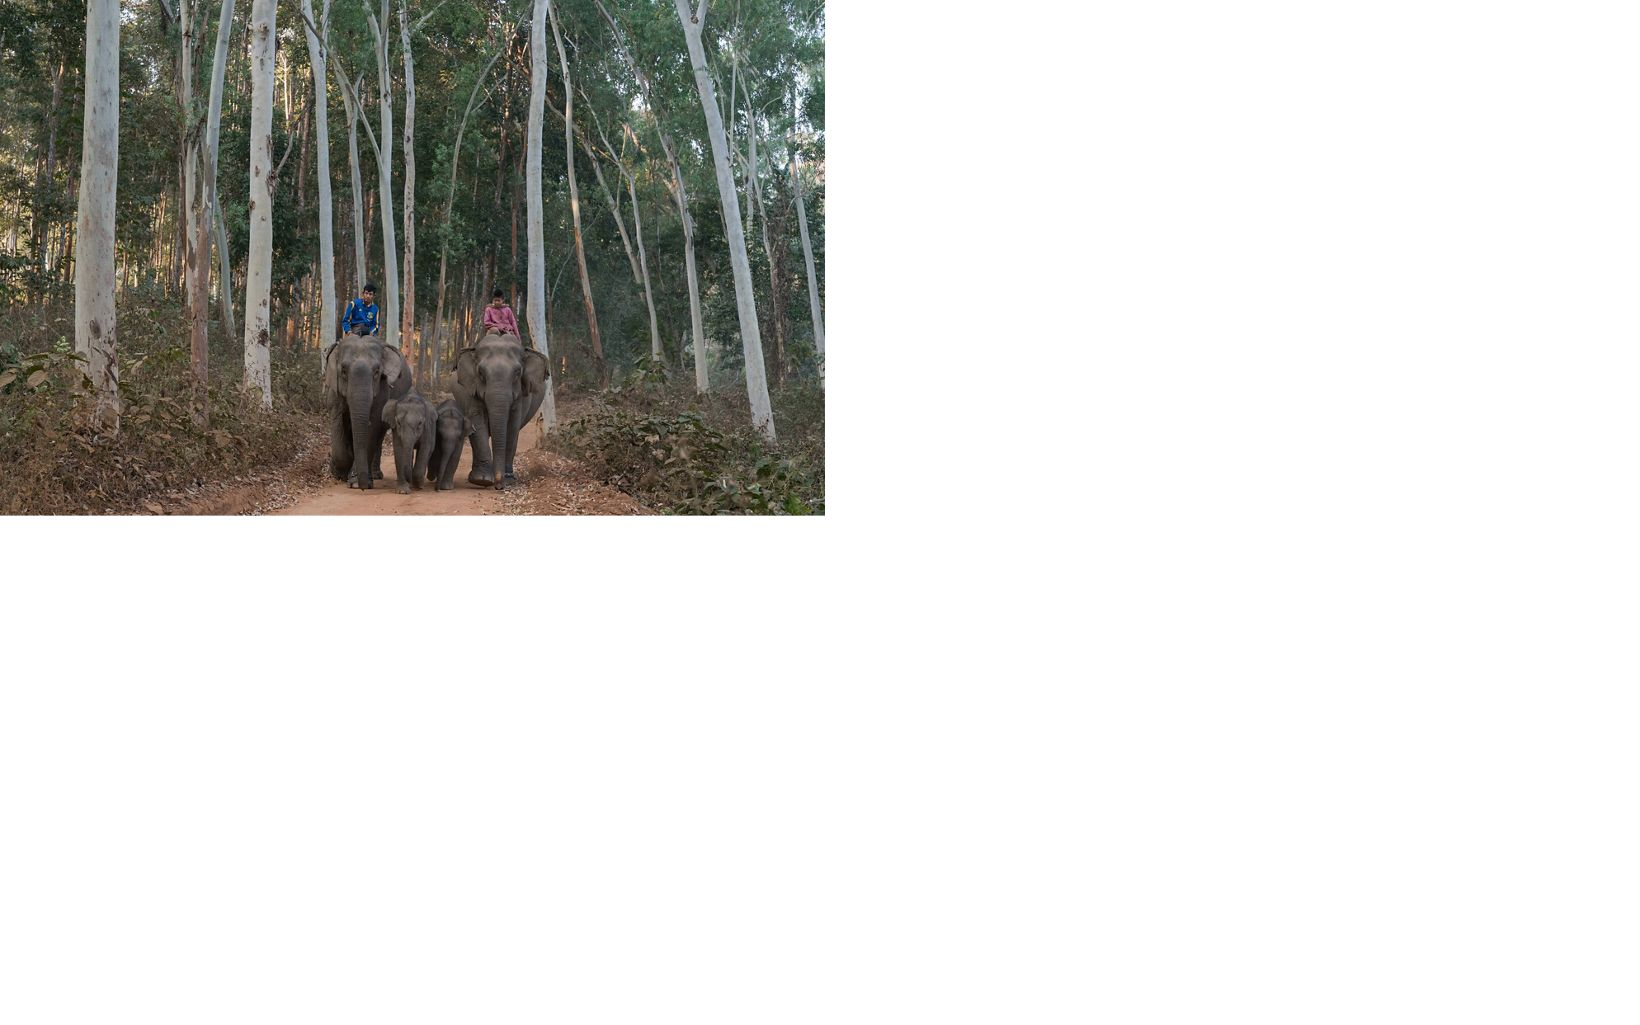 where tourists in Myanmar can come to observe elephants that were once used in these hardwood forests to drag out cut timber.